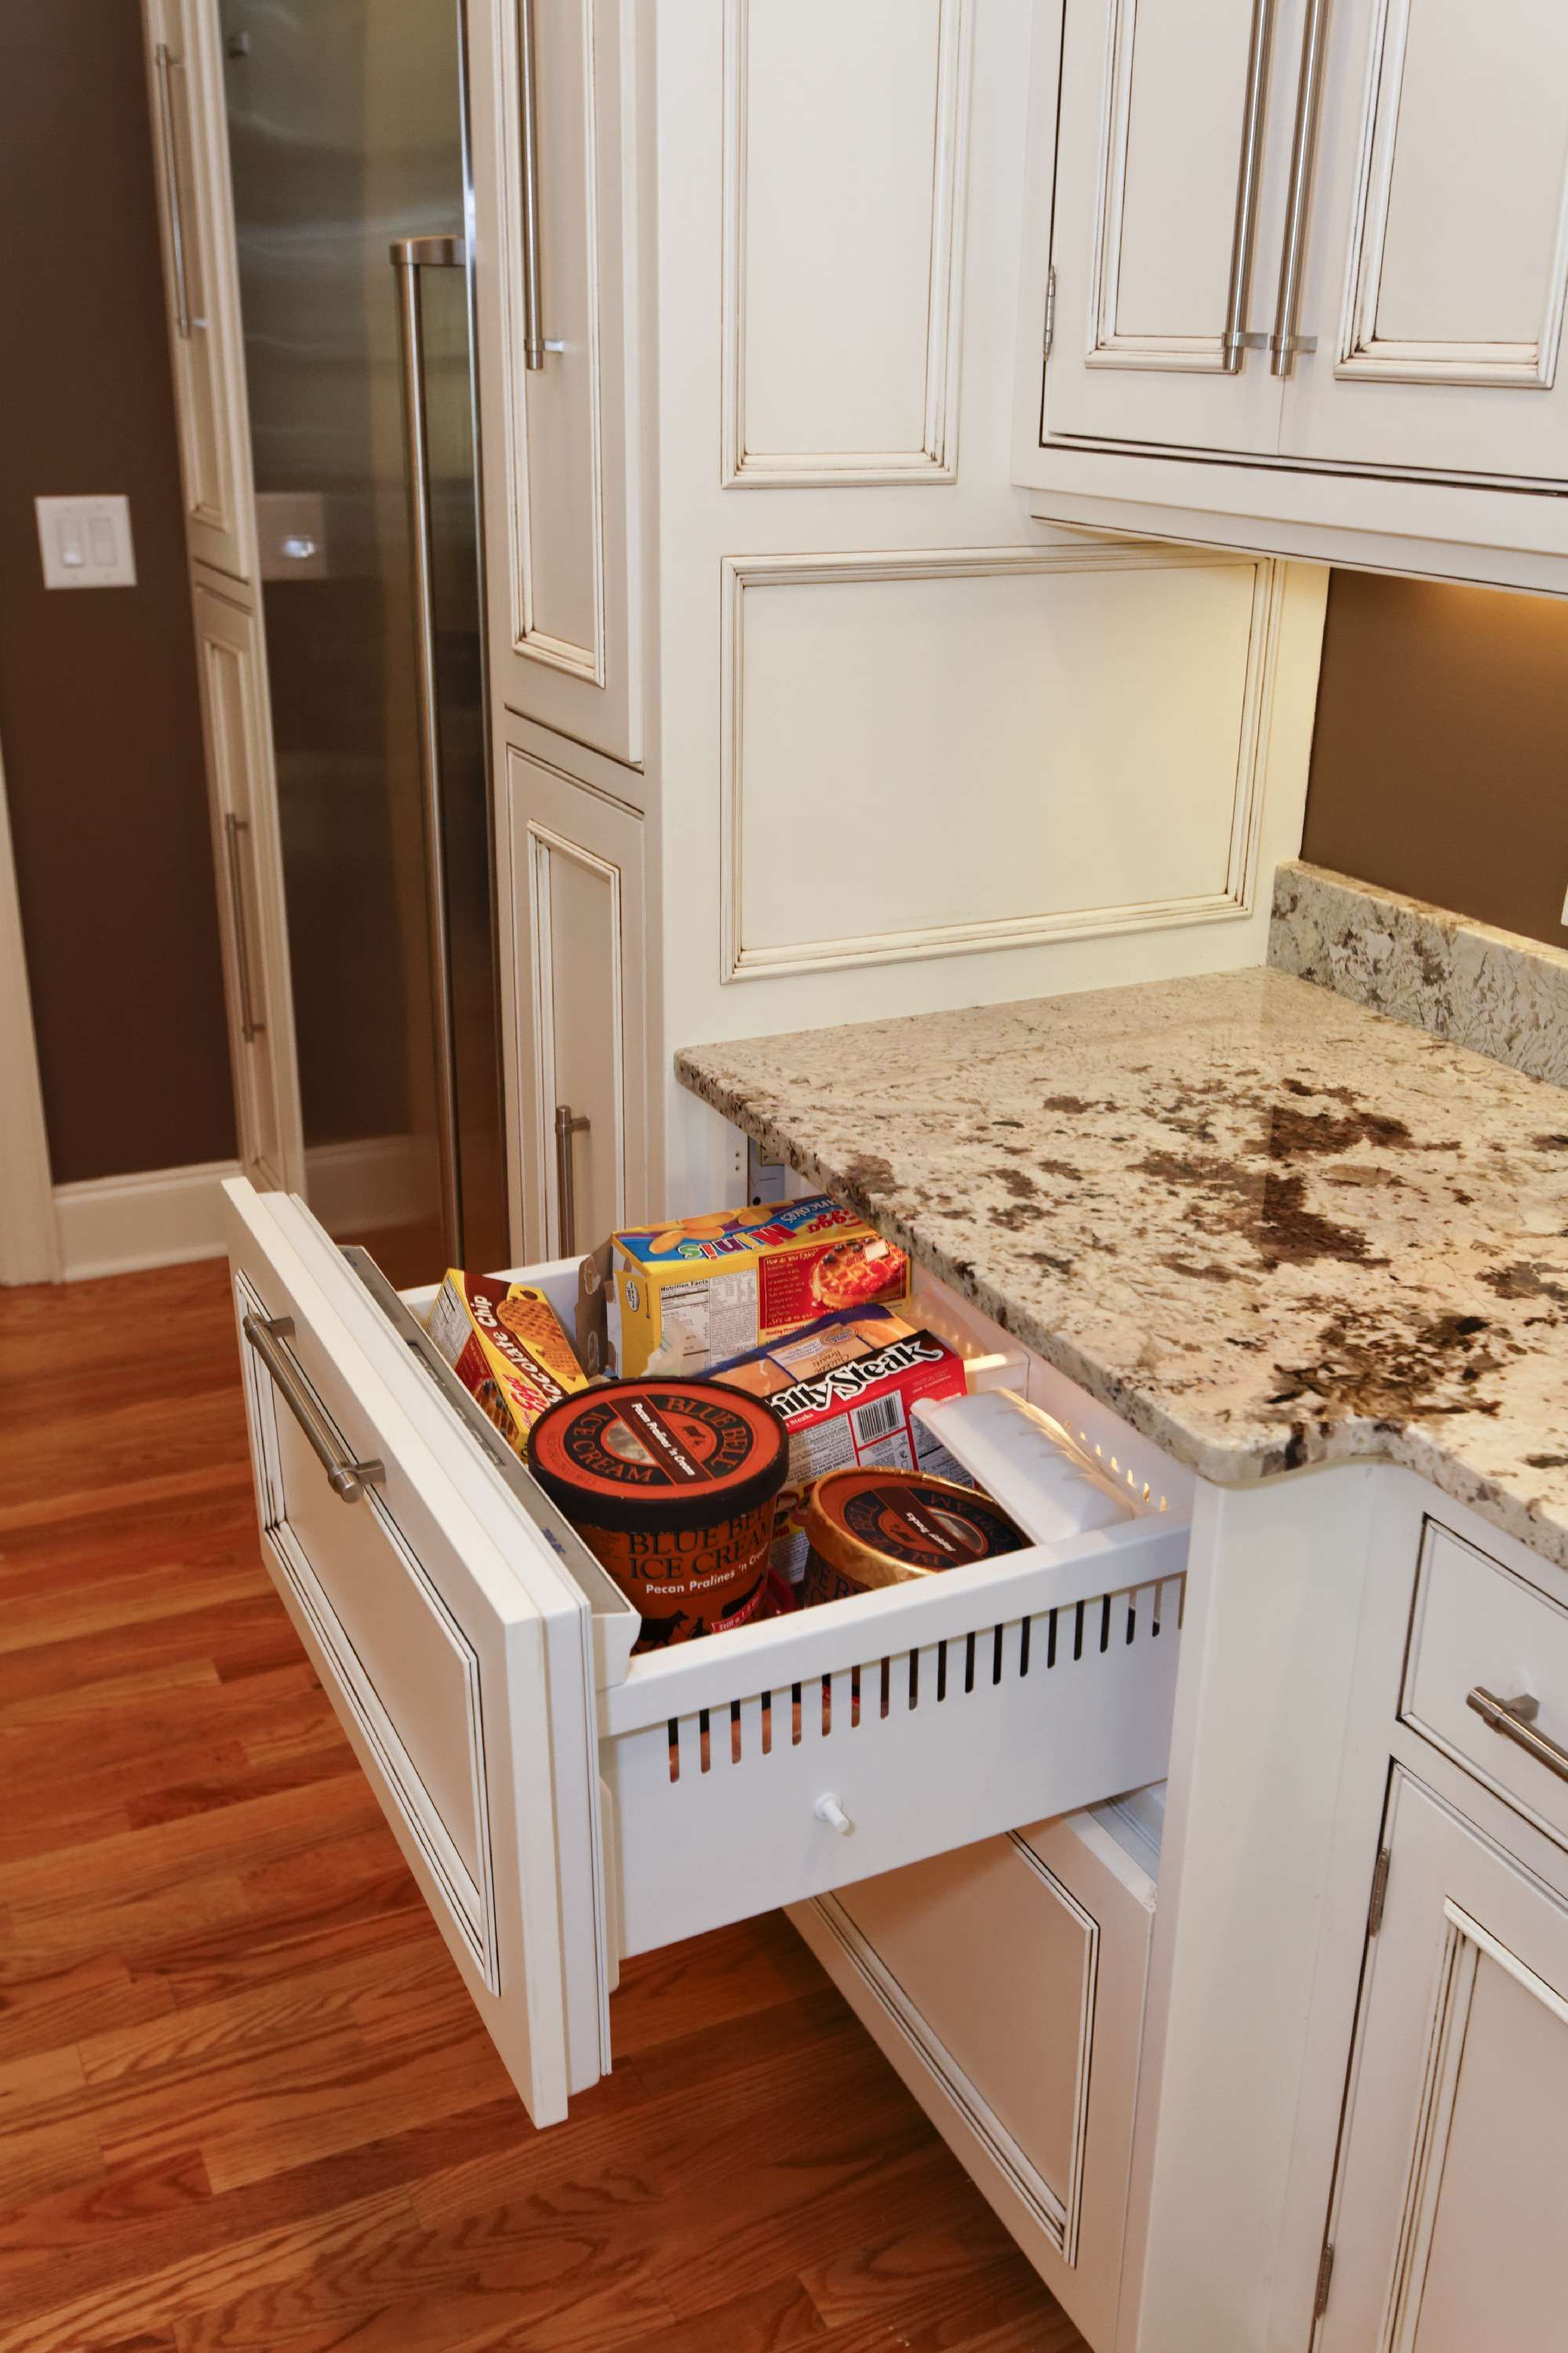 sub project freezer your transitional drawers mountain bliss to kitchens inspire next zero